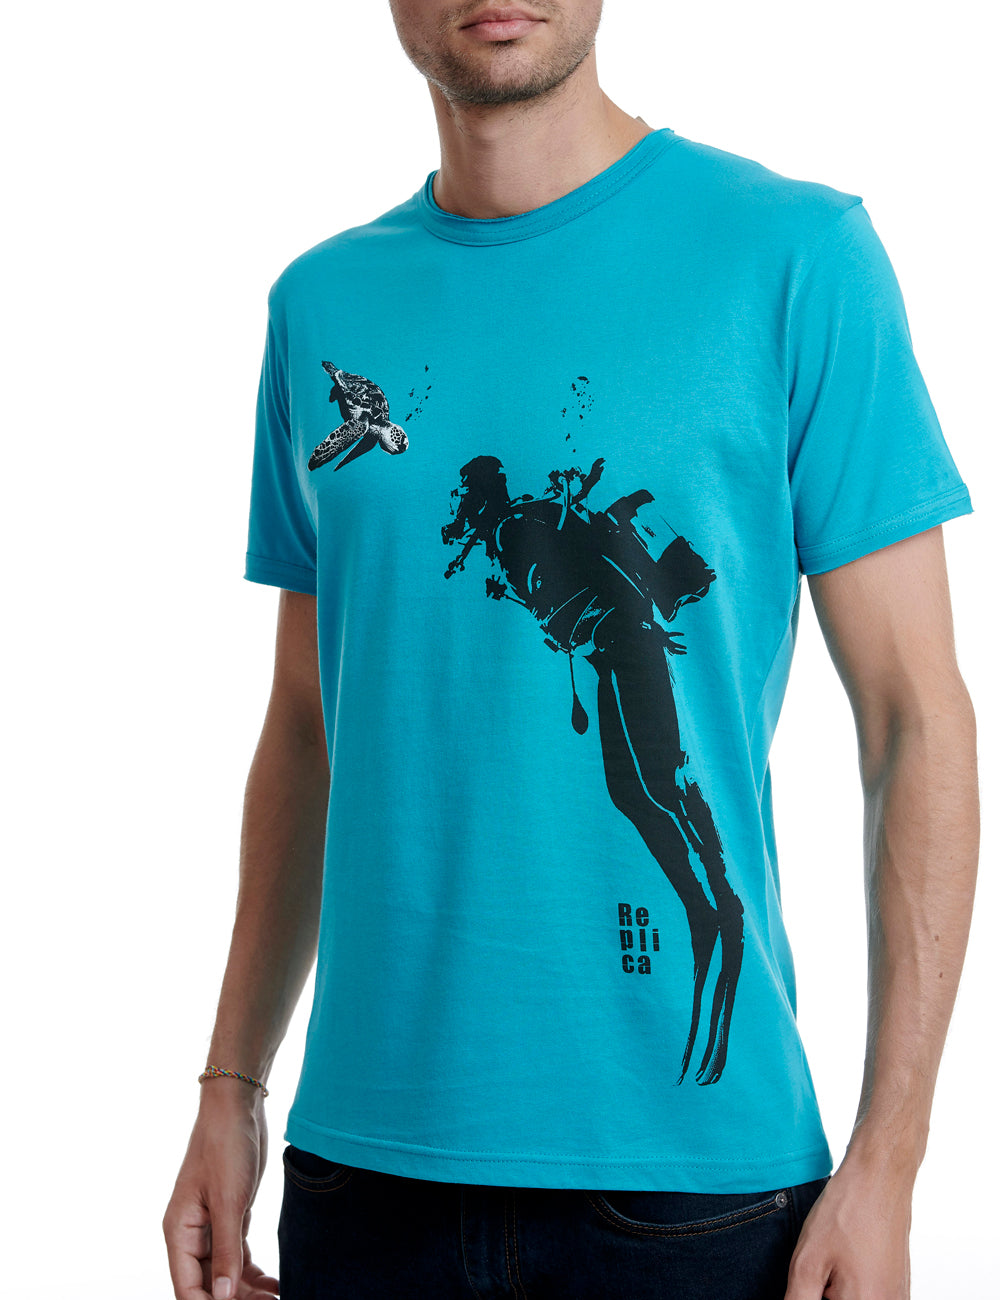 Diver Replica tshirt Greece Petrol